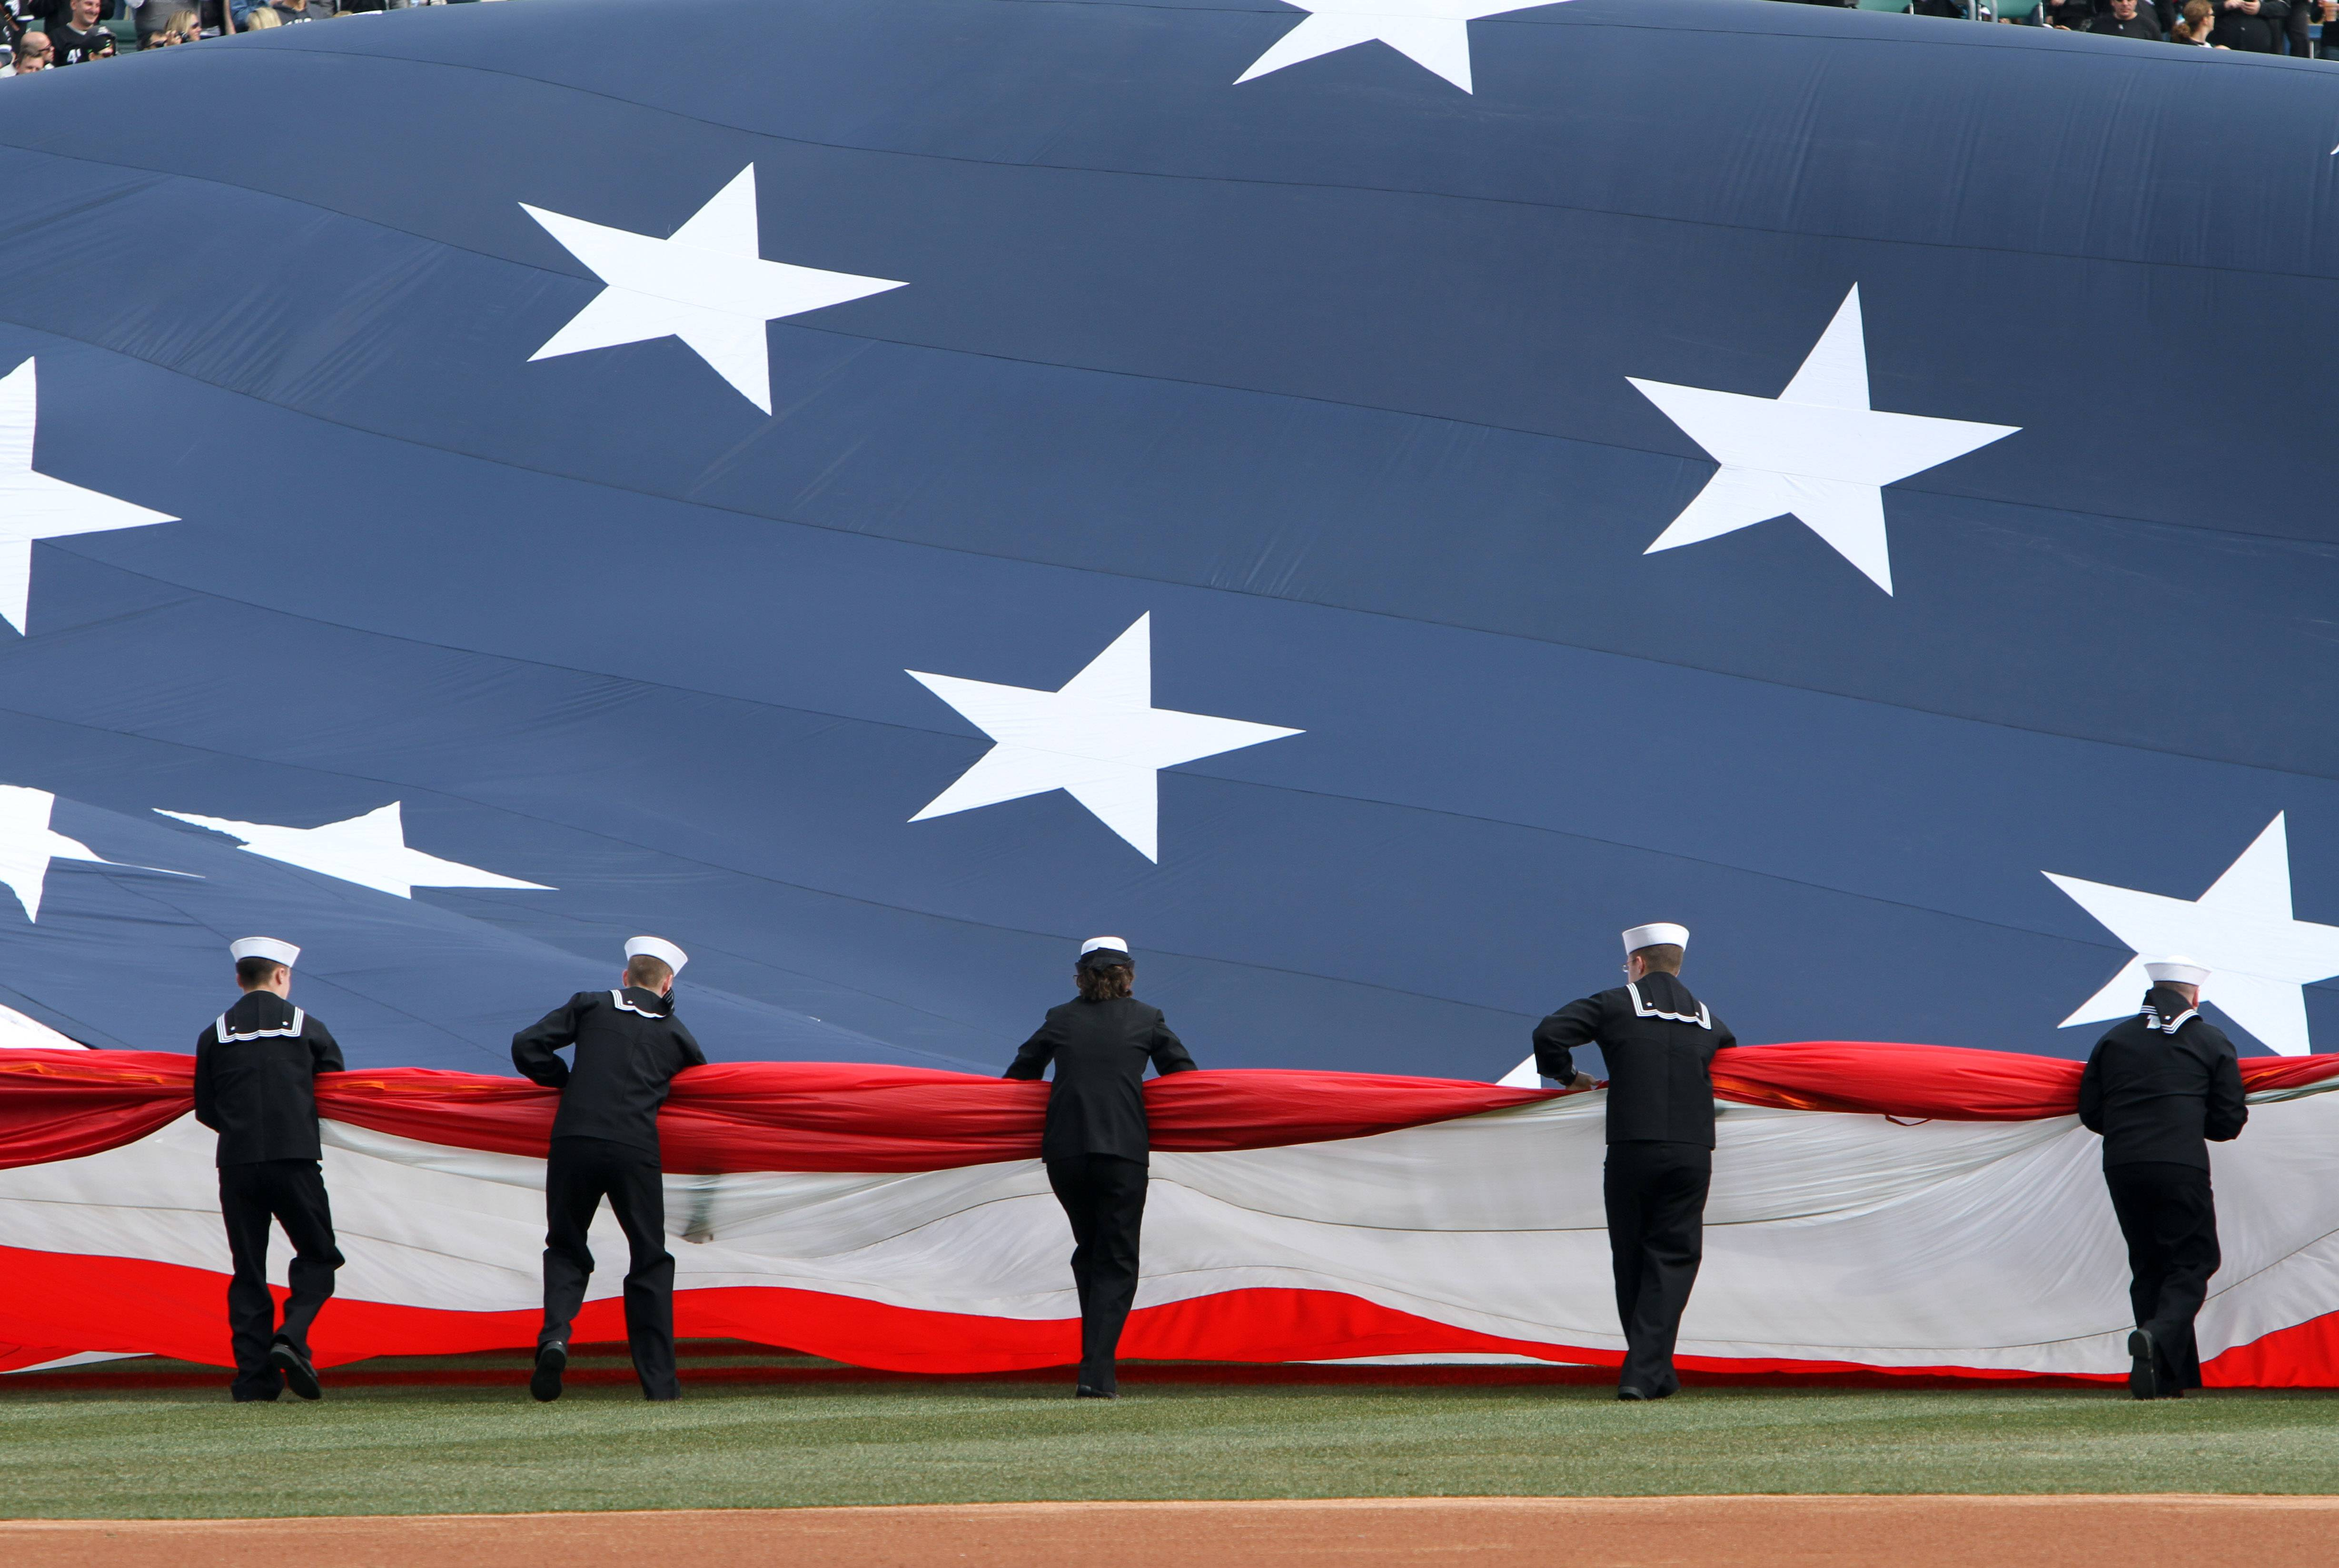 Sailors from Great Lakes Naval Base unfurl a giant American flag.